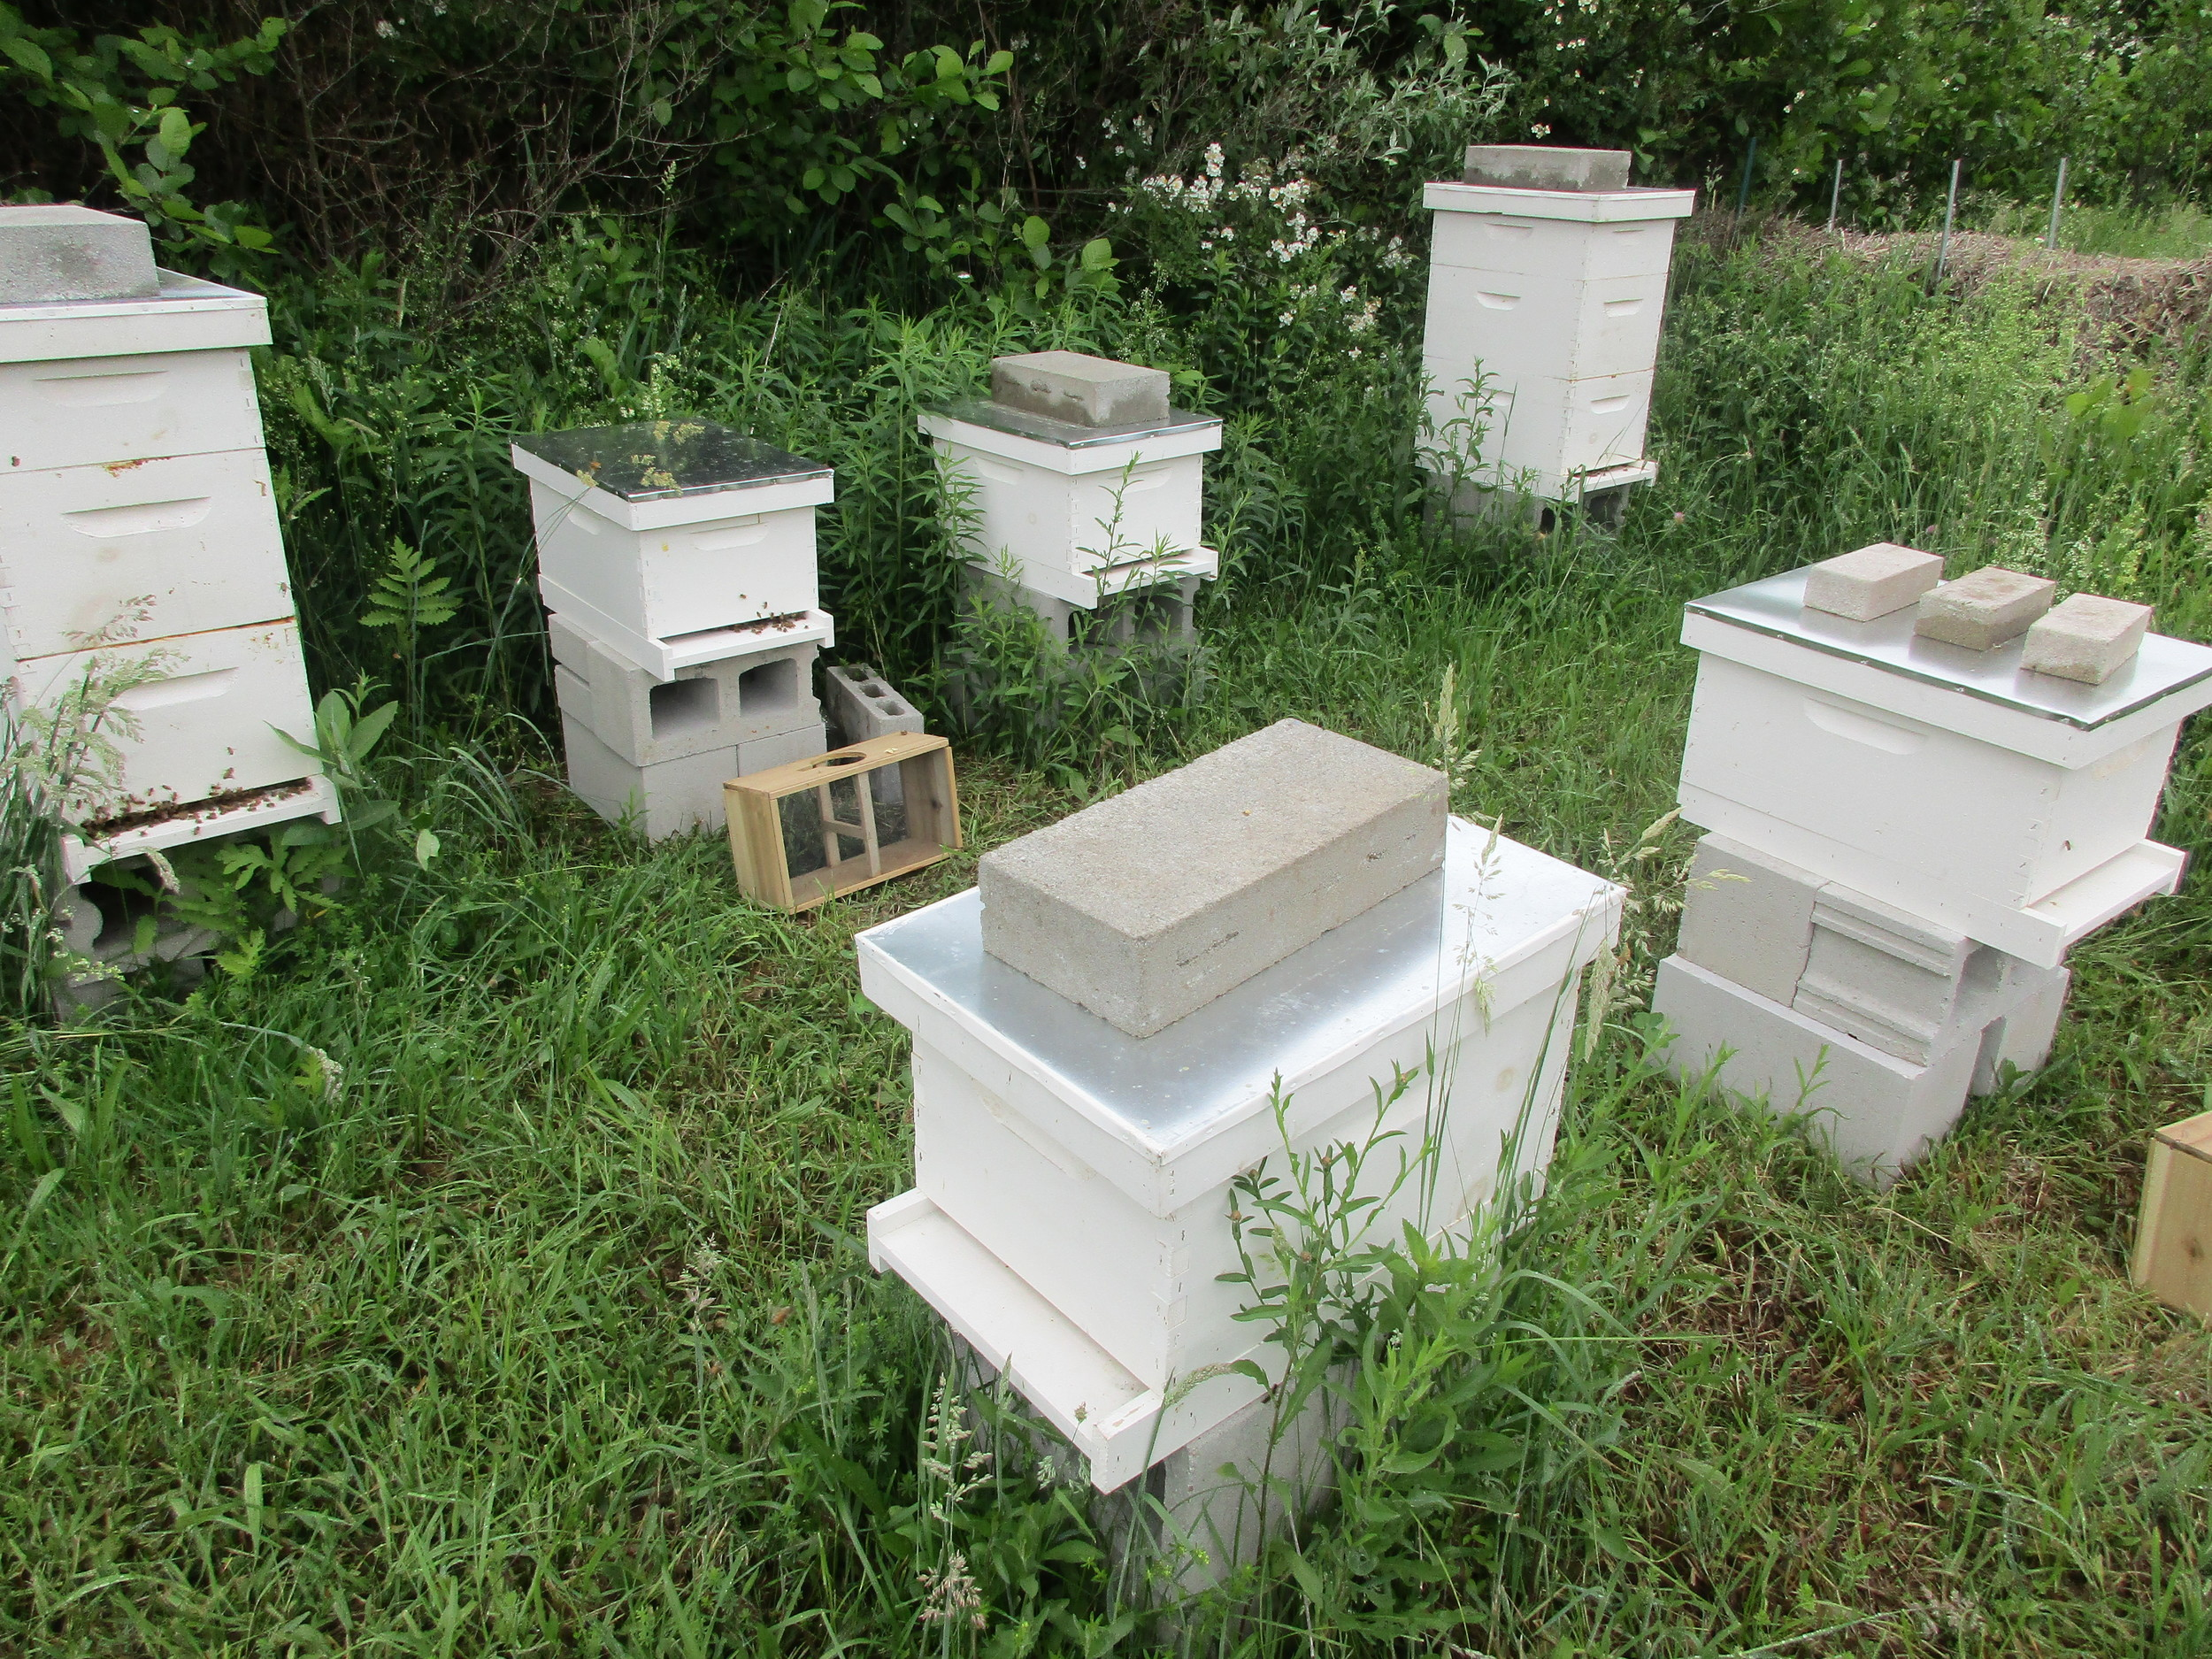 The two new hives still have the bee package boxes sitting in front of them.